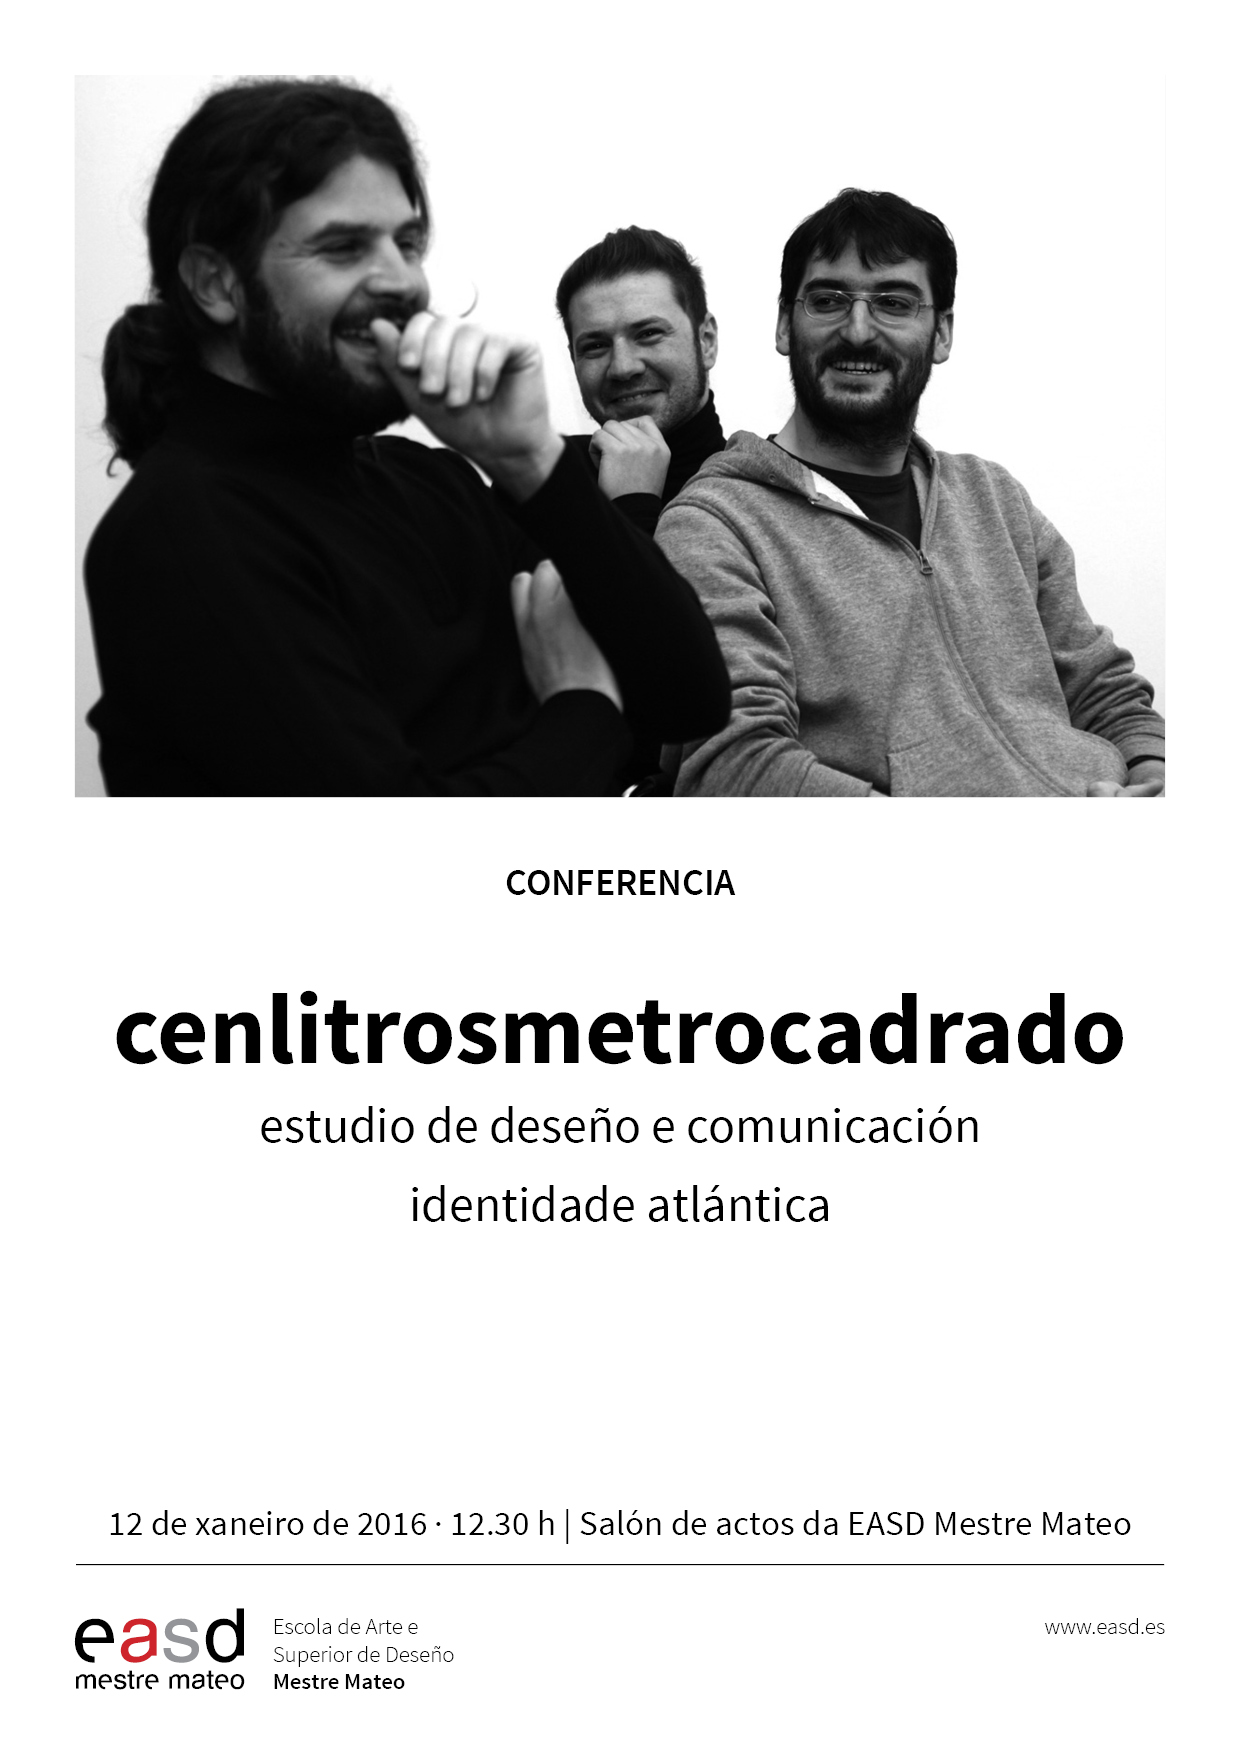 CONFERENCIAS MM| Cenlitrosmetrocadrado